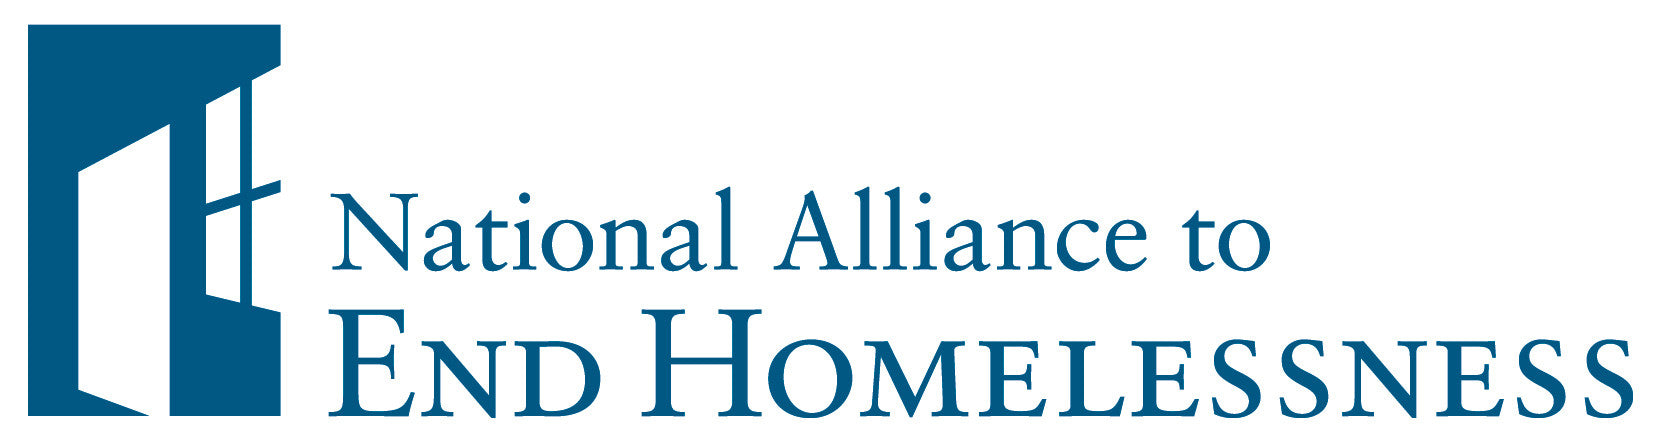 National Alliance to End Homelessness logo